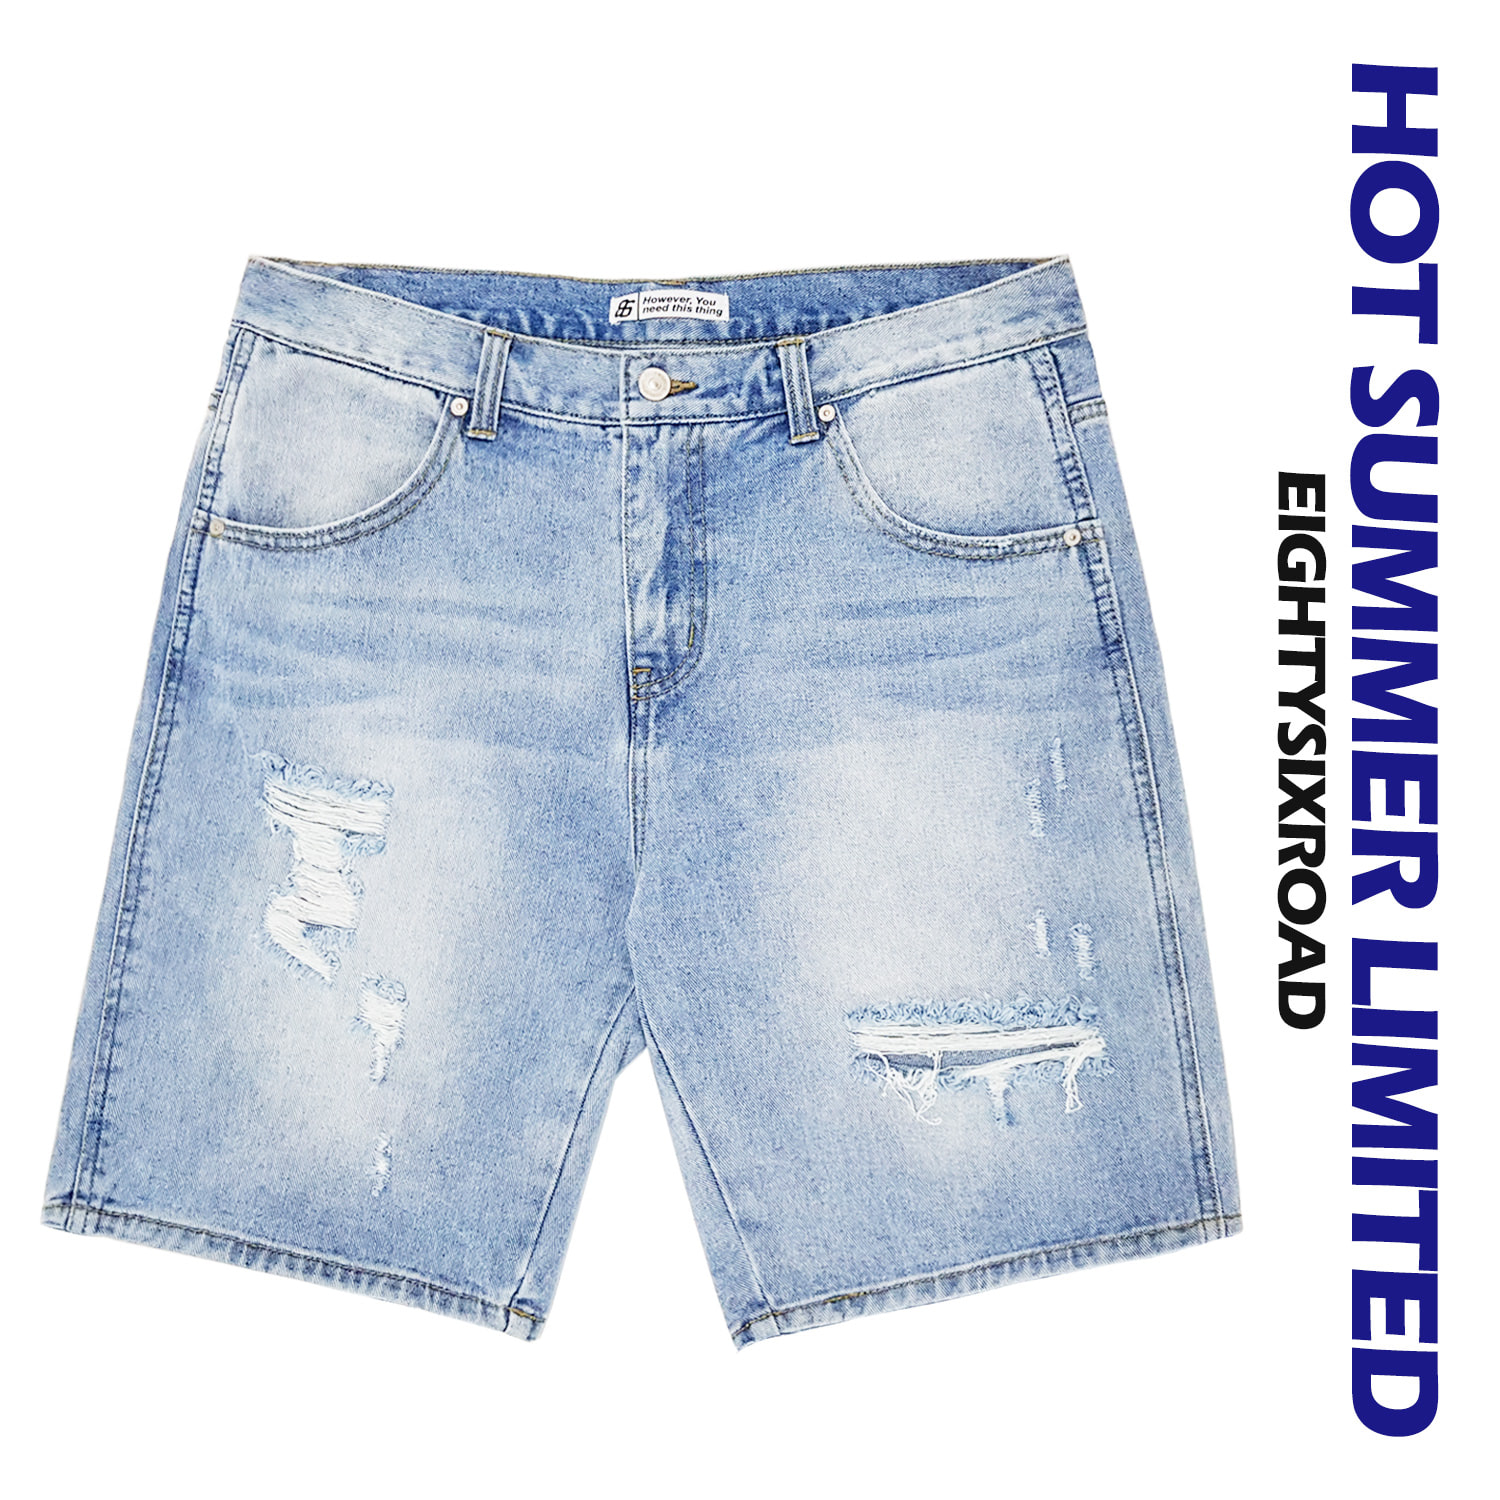 1613 Washing destroyed denim shorts